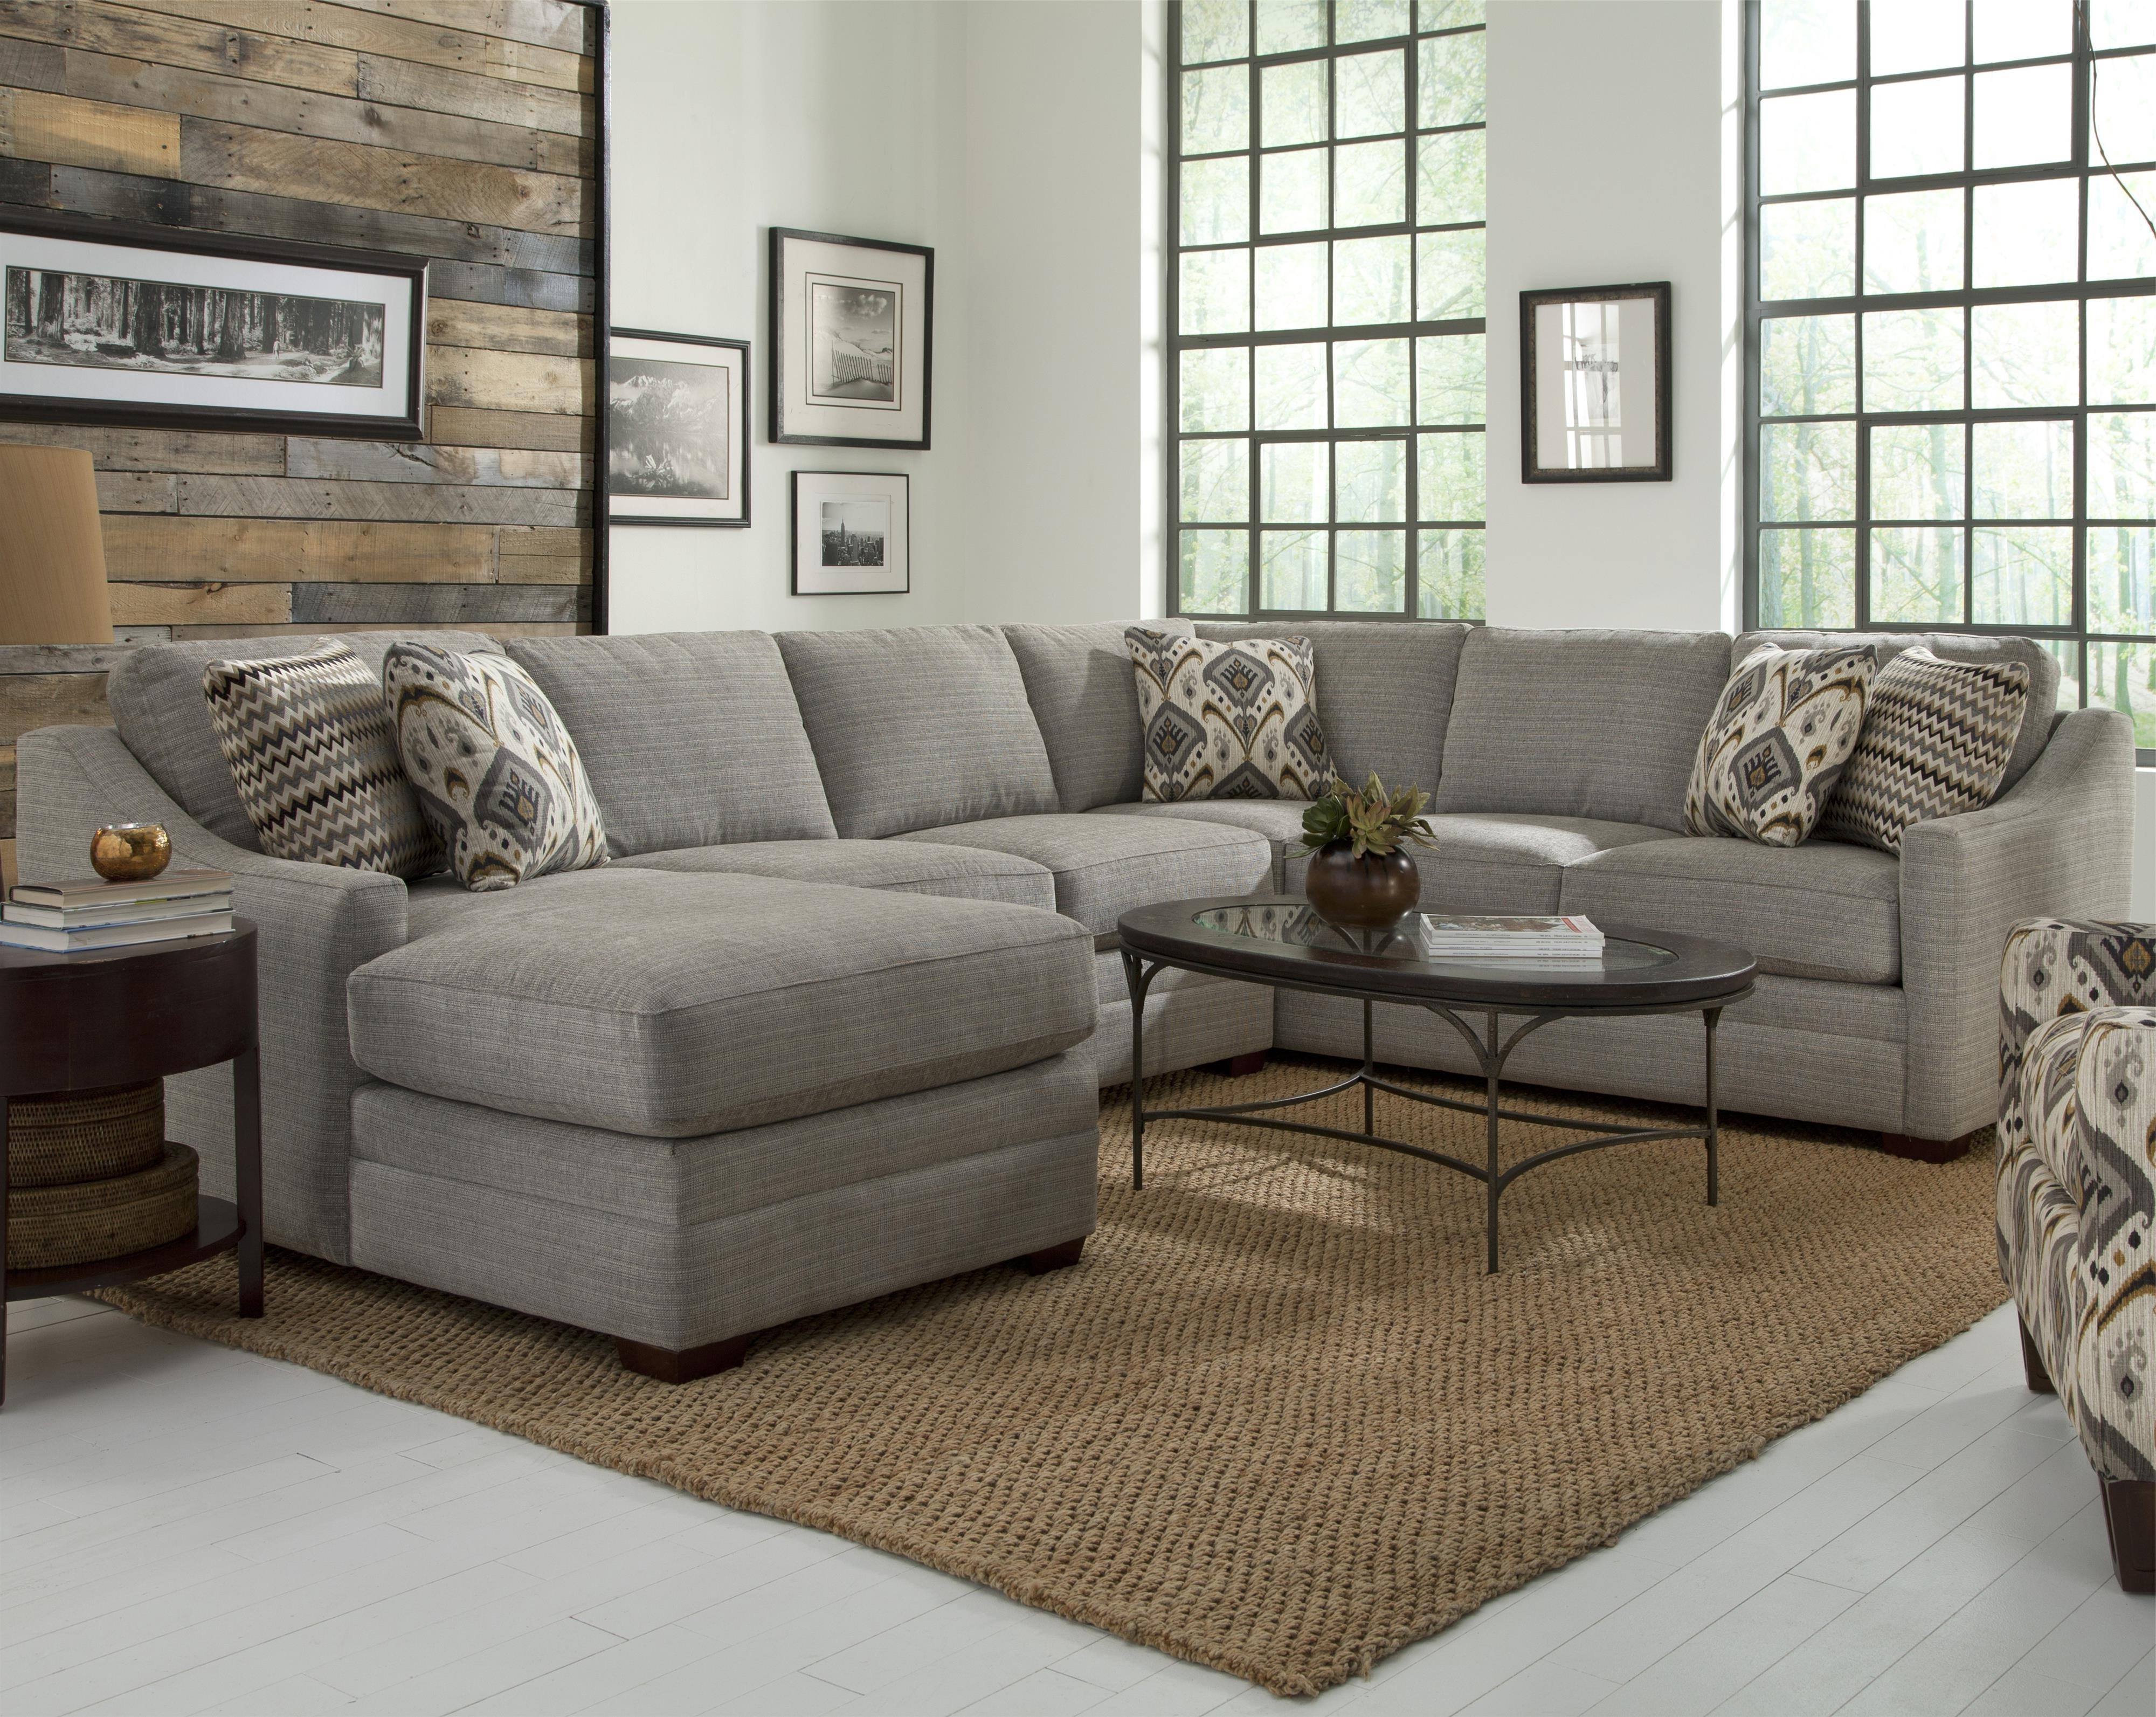 Customizable Four Piece Sectional Sofacraftmaster (View 9 of 20)